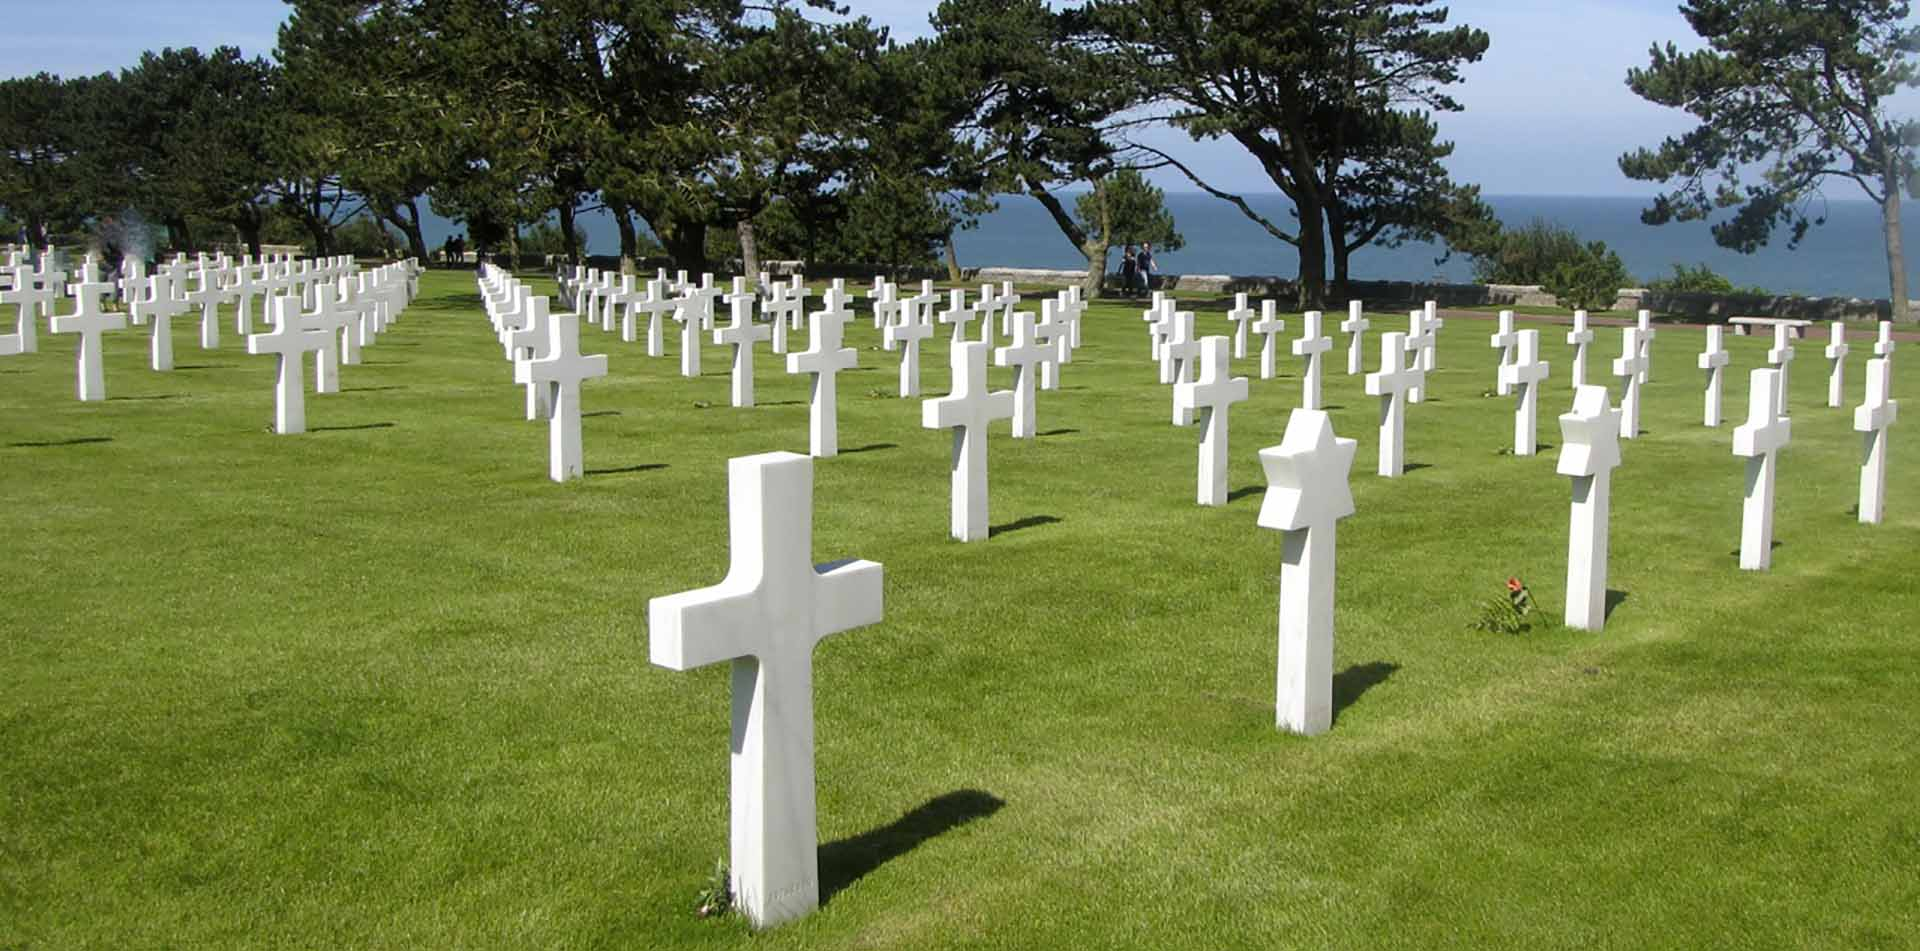 Europe France Normandy American Cemetery and Memorial World War II historic marble crosses - luxury vacation destinations